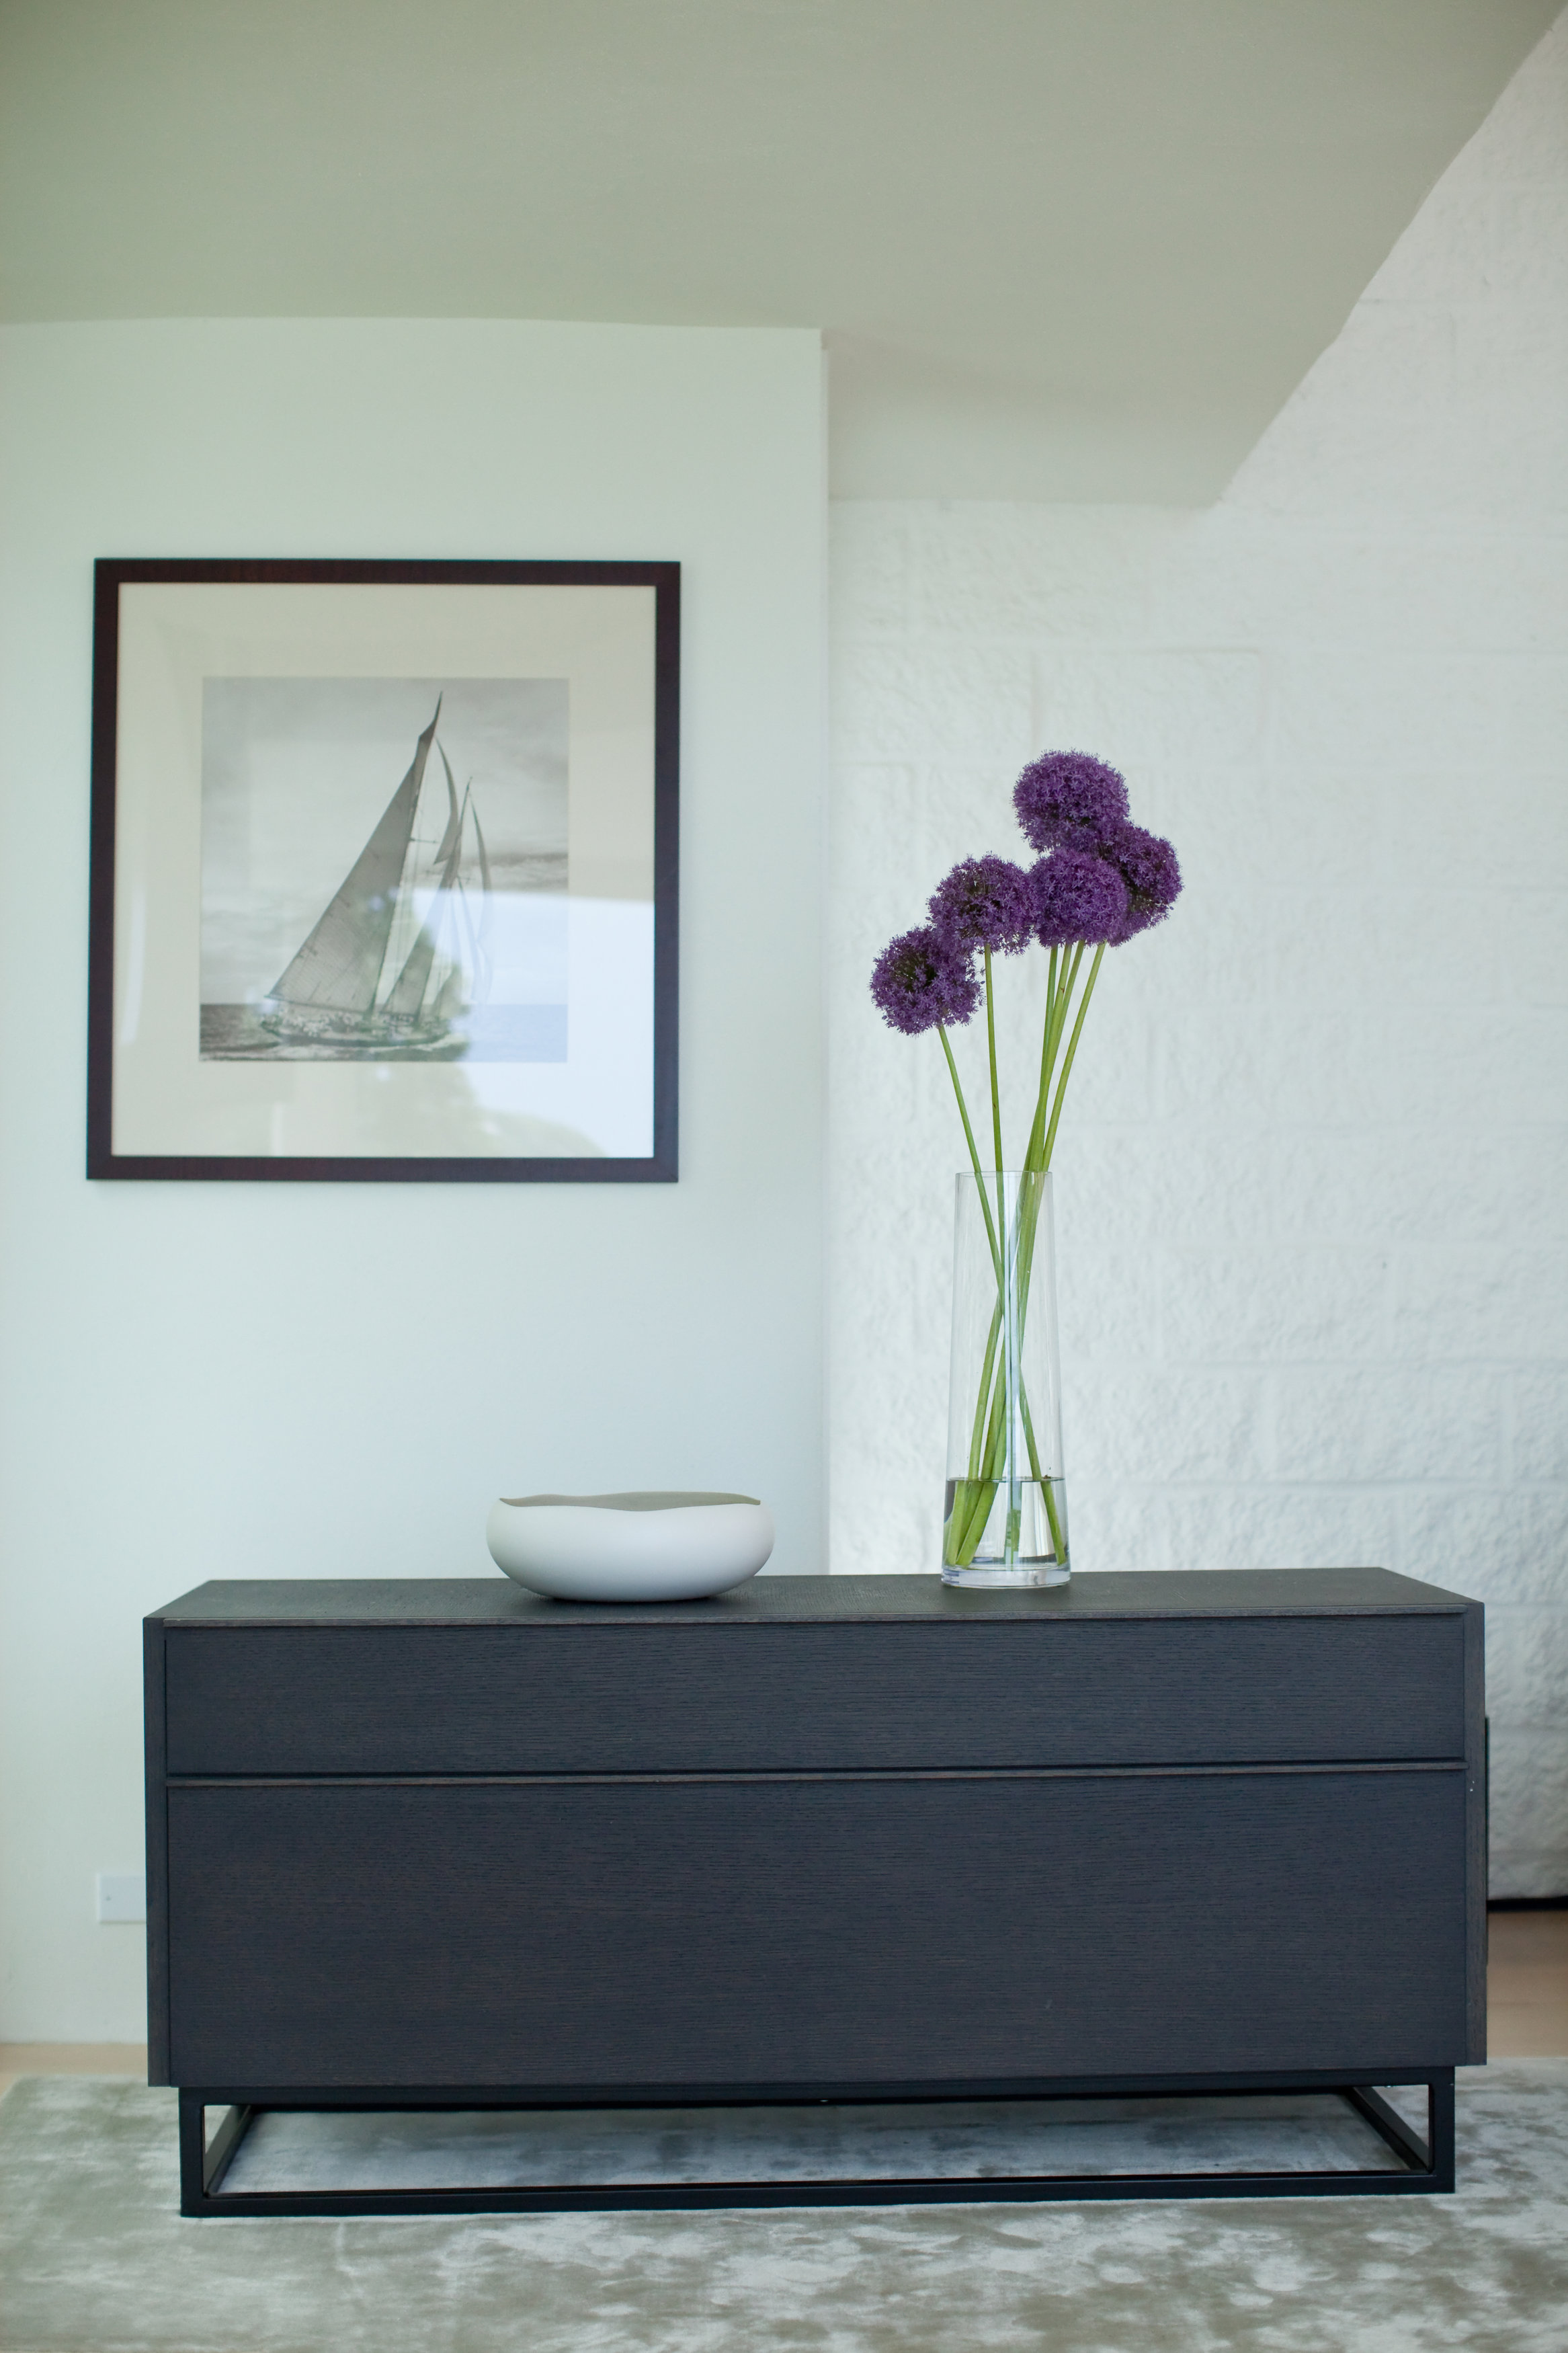 Michelle Miller Interiors-Annapolis Residence II-0244 - Console.jpg